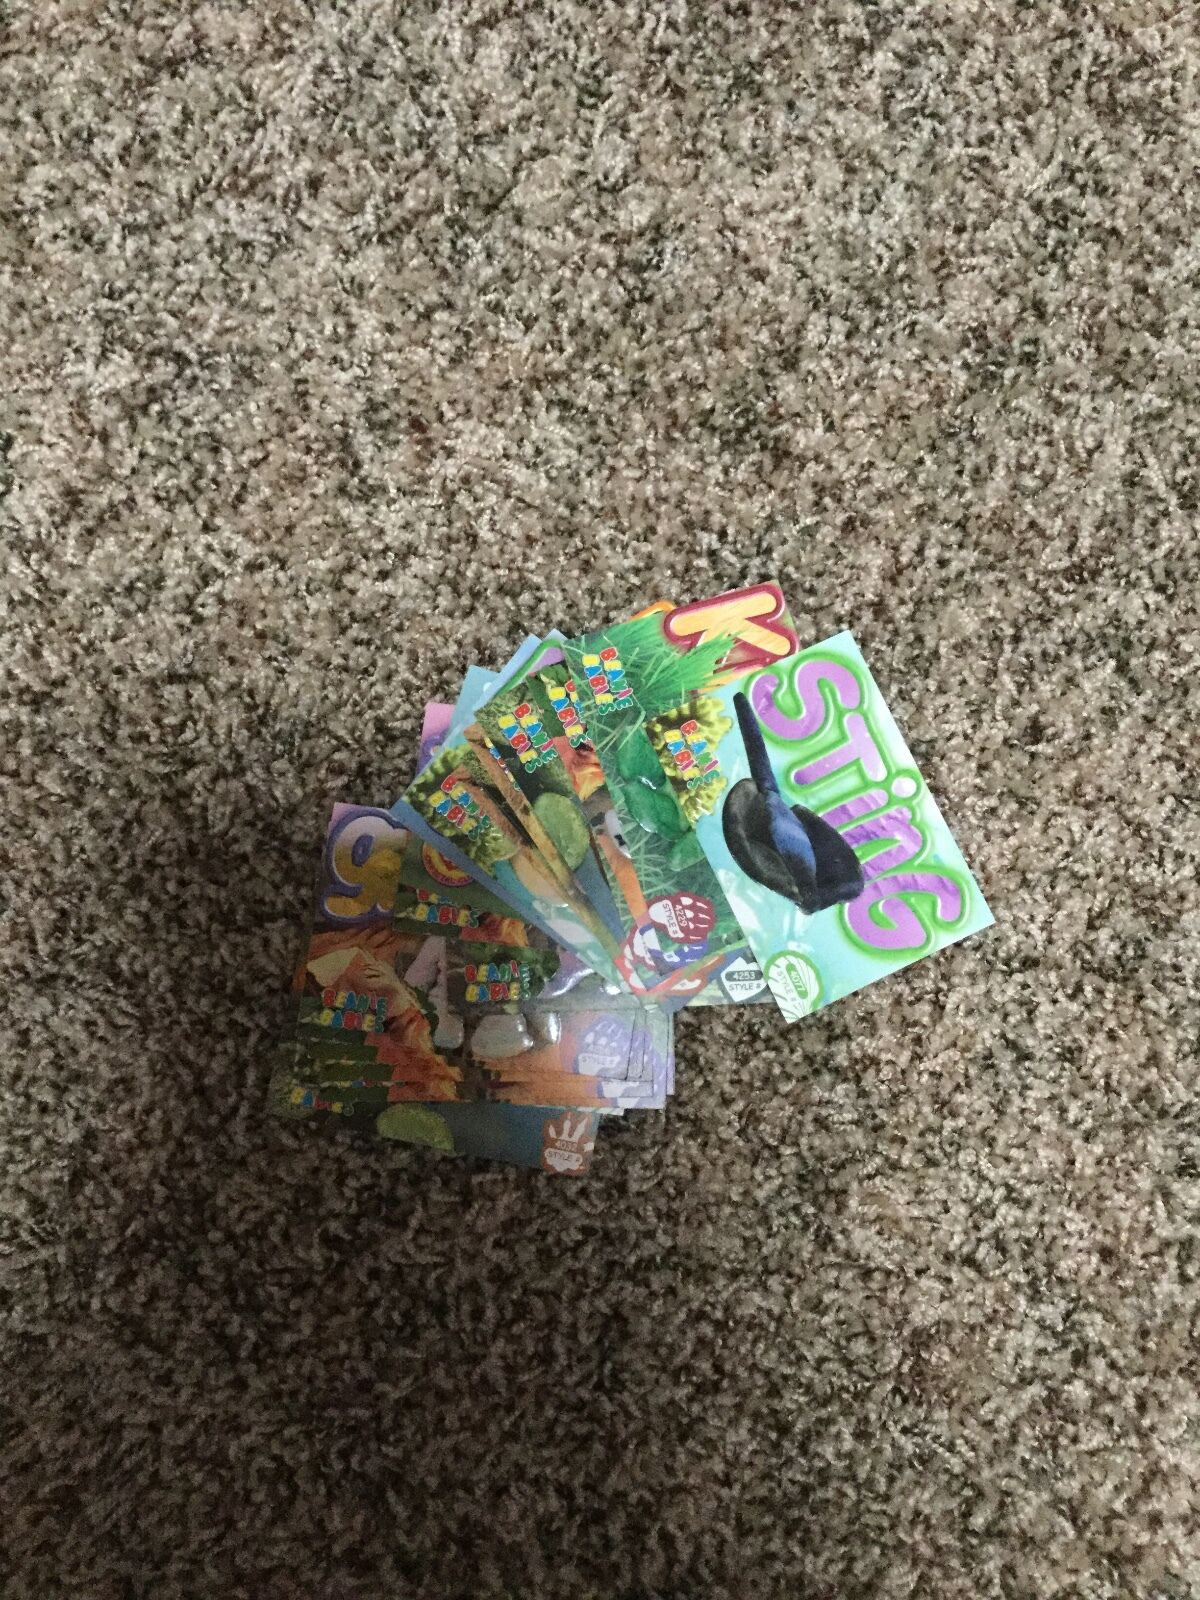 Beanie baby trading cards, various additions